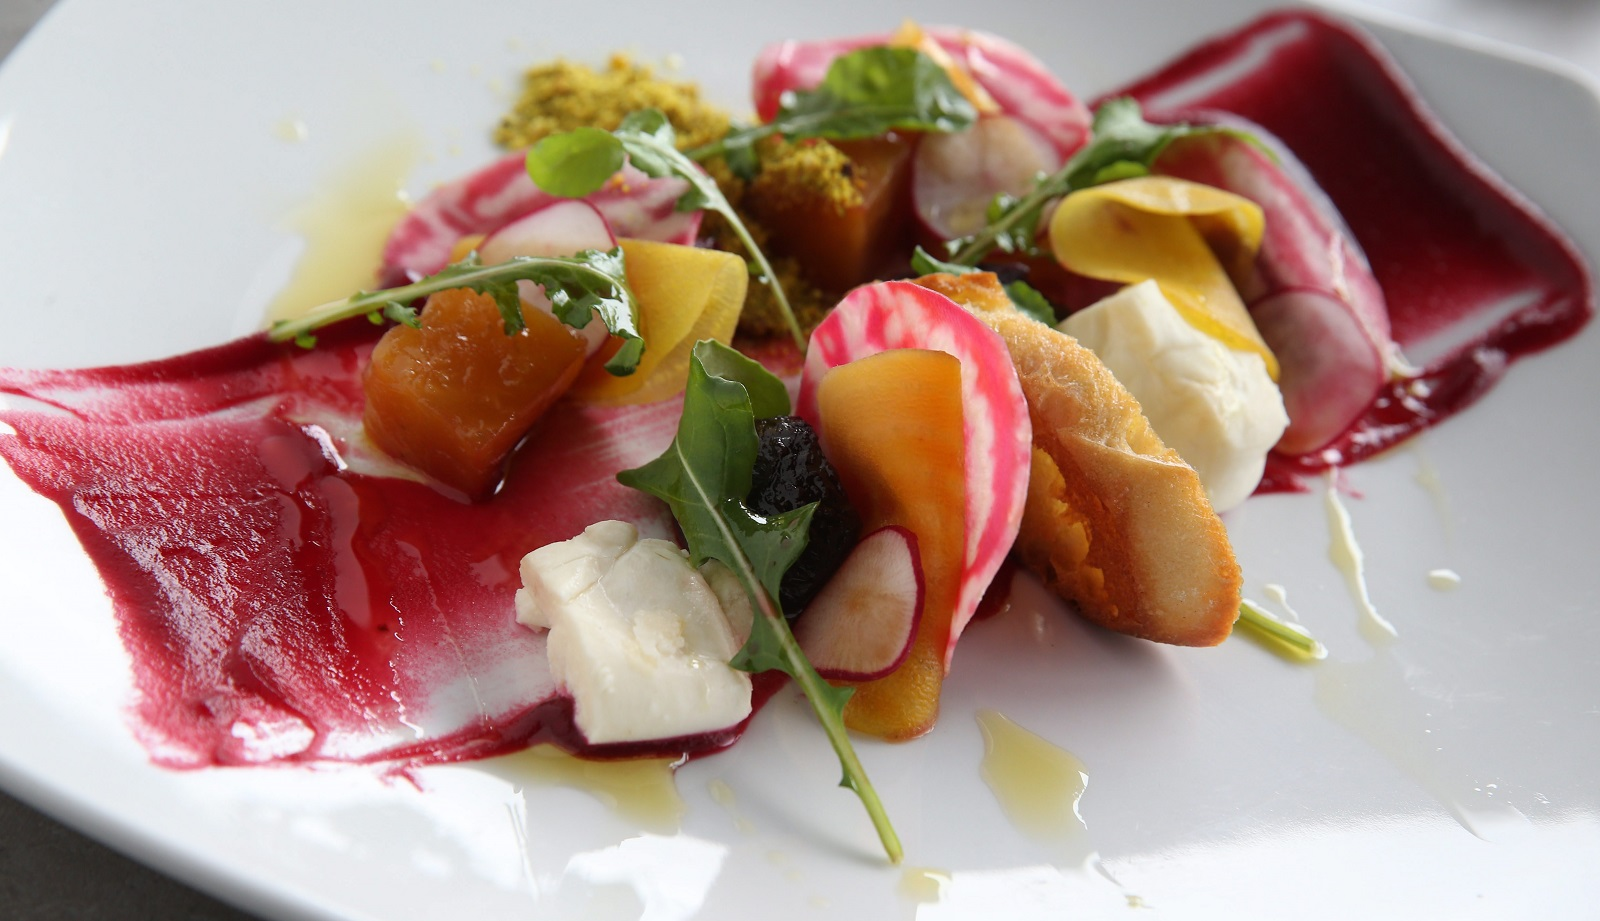 William K's roasted beets come with burrata, local honey, masala milk powder and garlic bread. (Sharon Cantillon/Buffalo News)